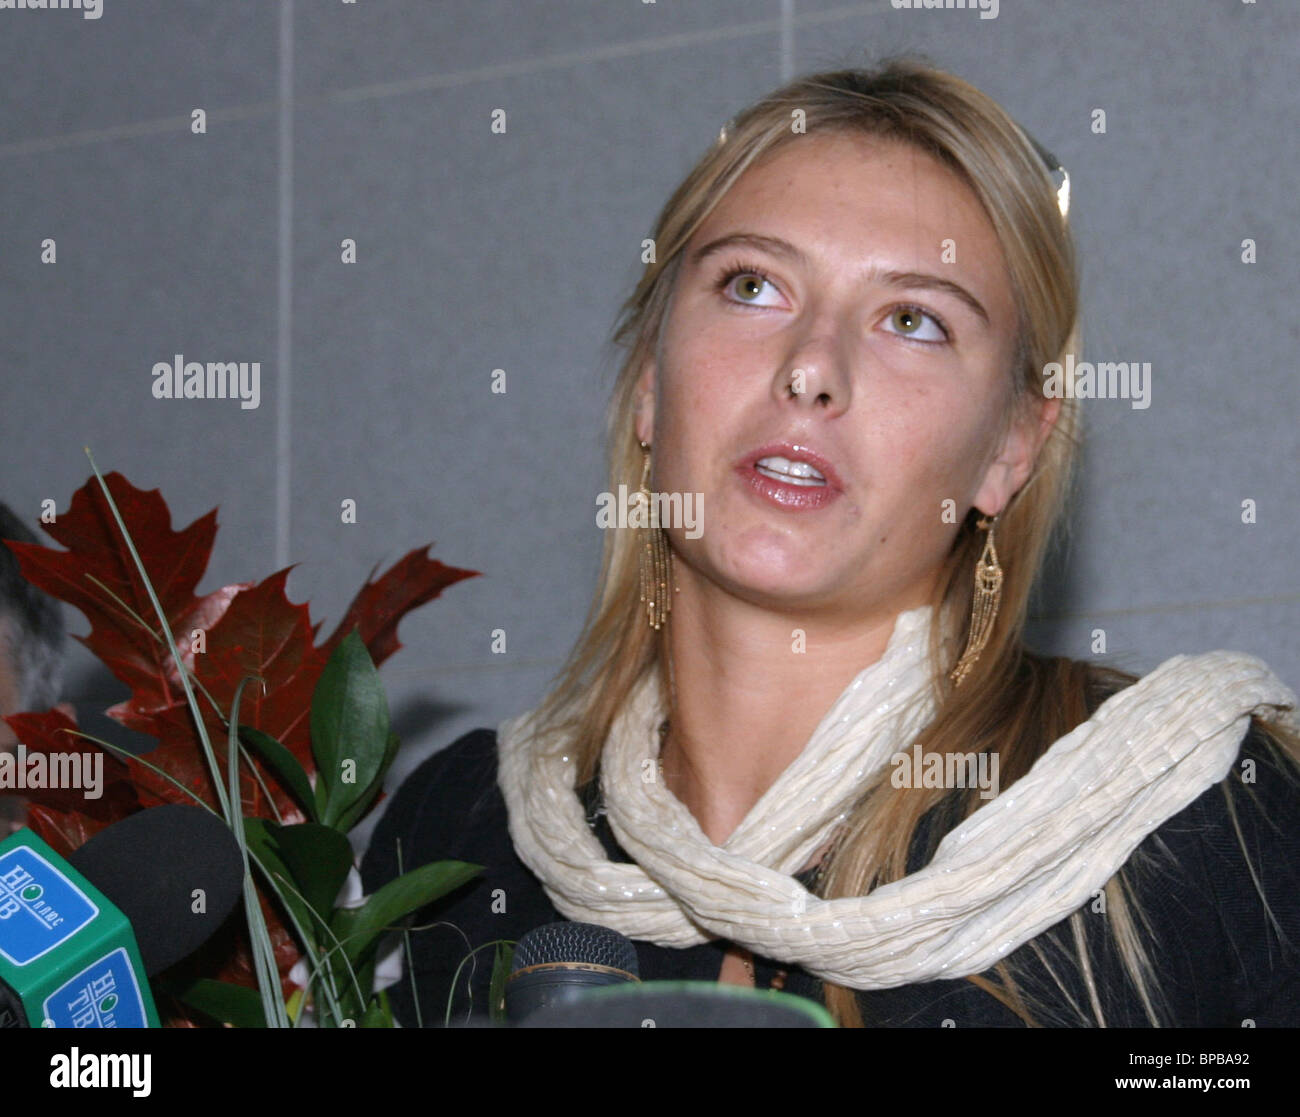 World's best tennis player Maria Sharapova arrives in Moscow to participate in Kremlin Cup 2005 - Stock Image